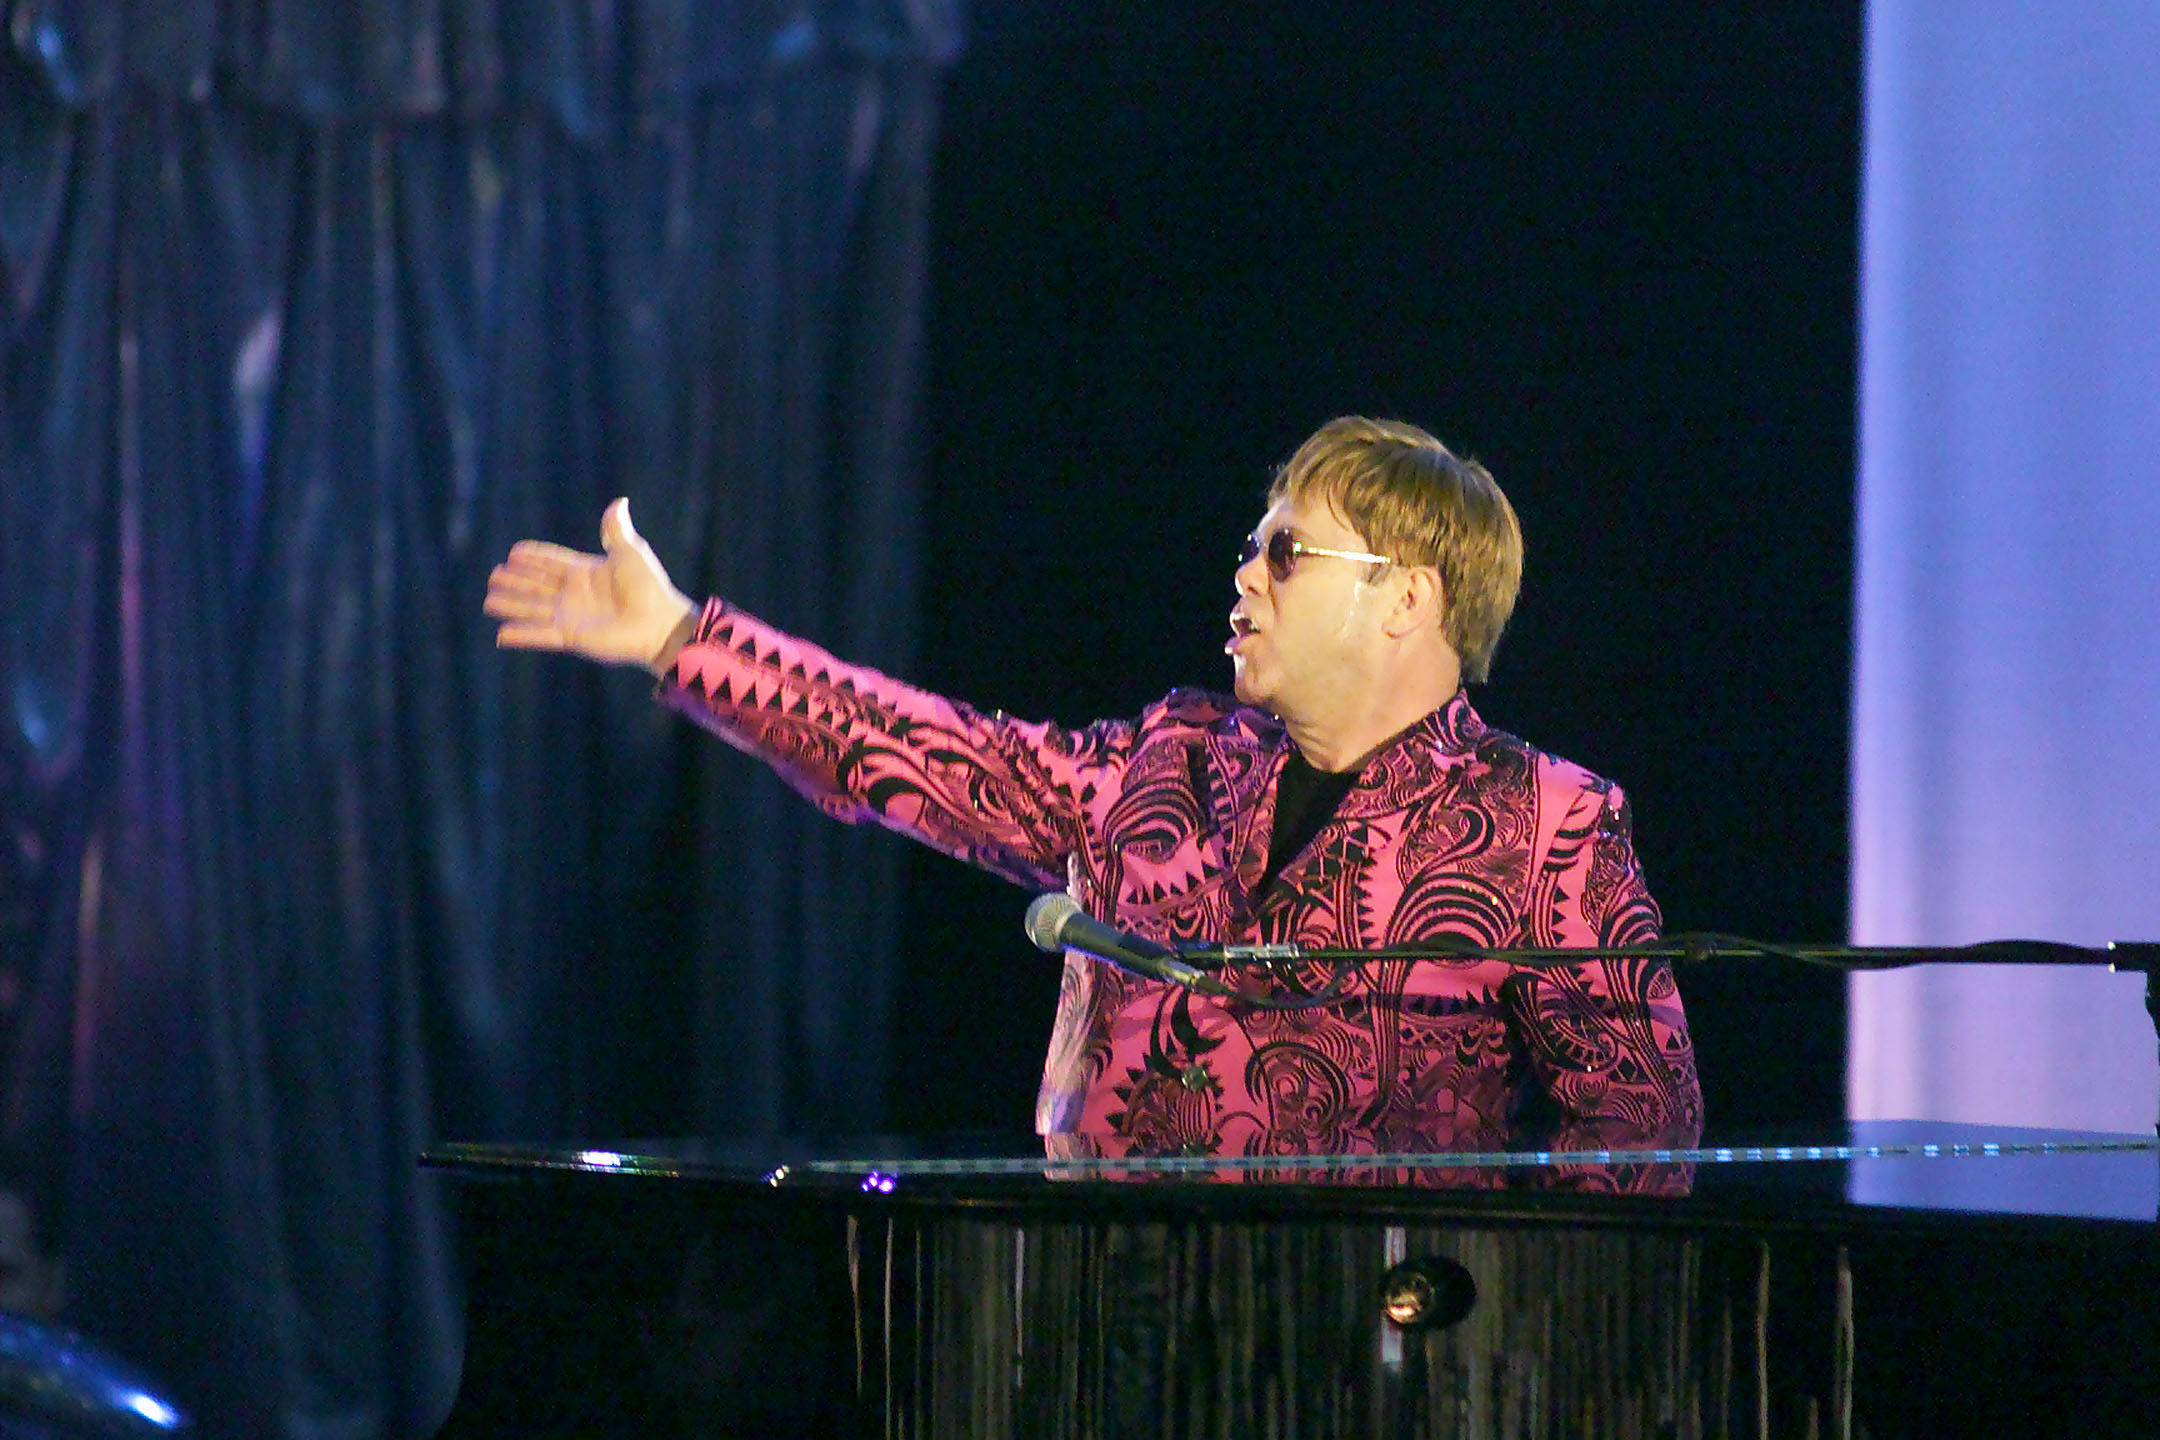 Note to self: No matter how hard you try, Elton's blazer game will be superior to pretty much anyone else on the face of the Earth.